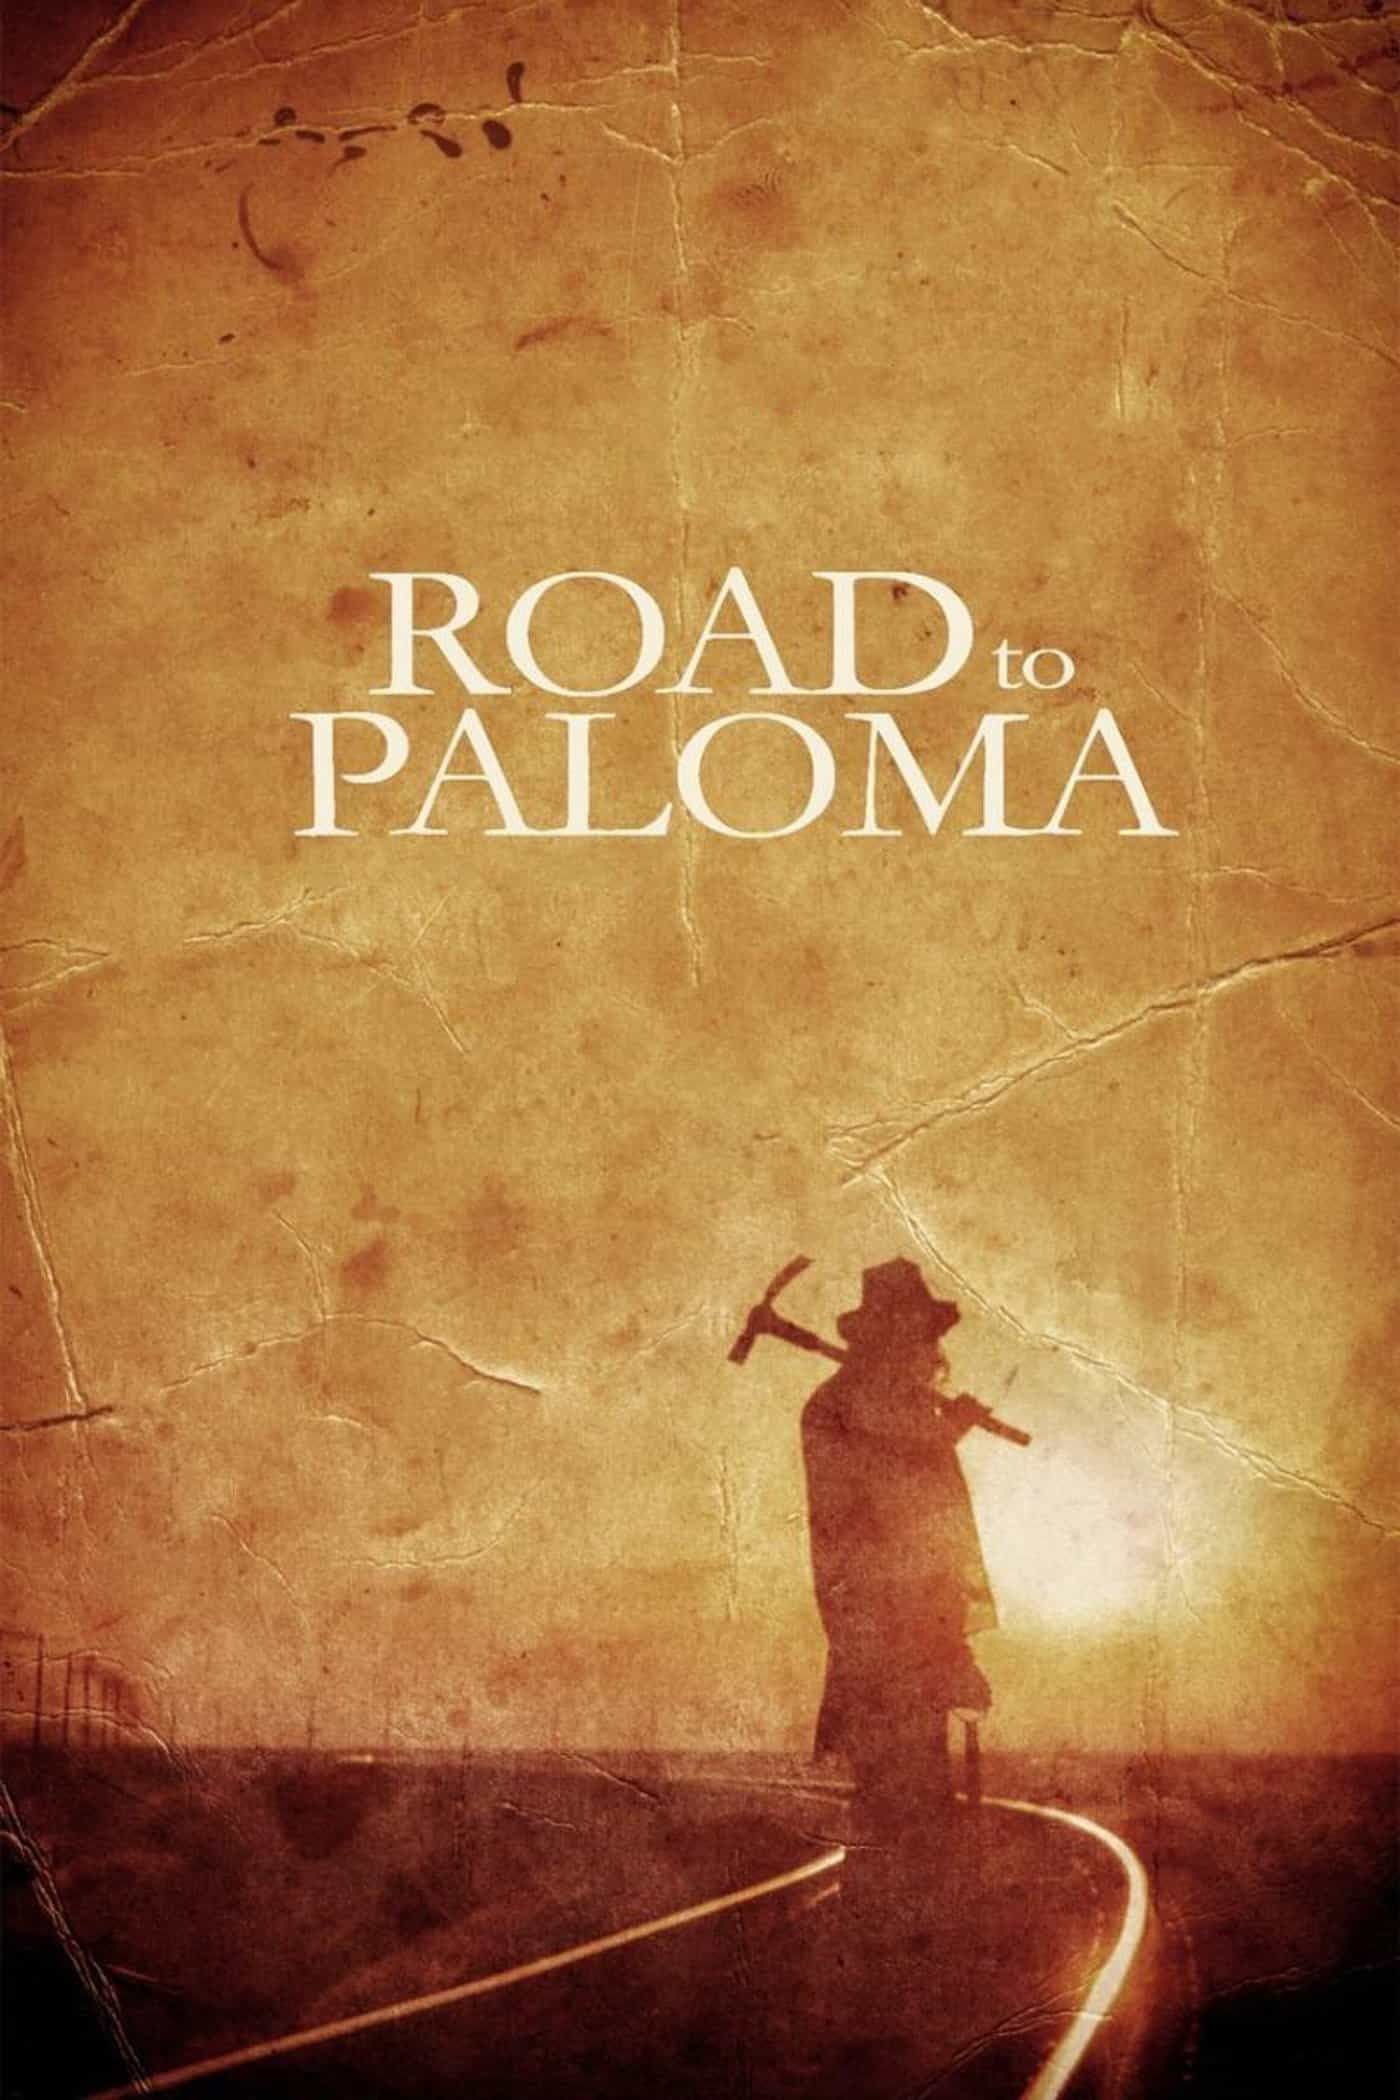 Road to Paloma, 2014